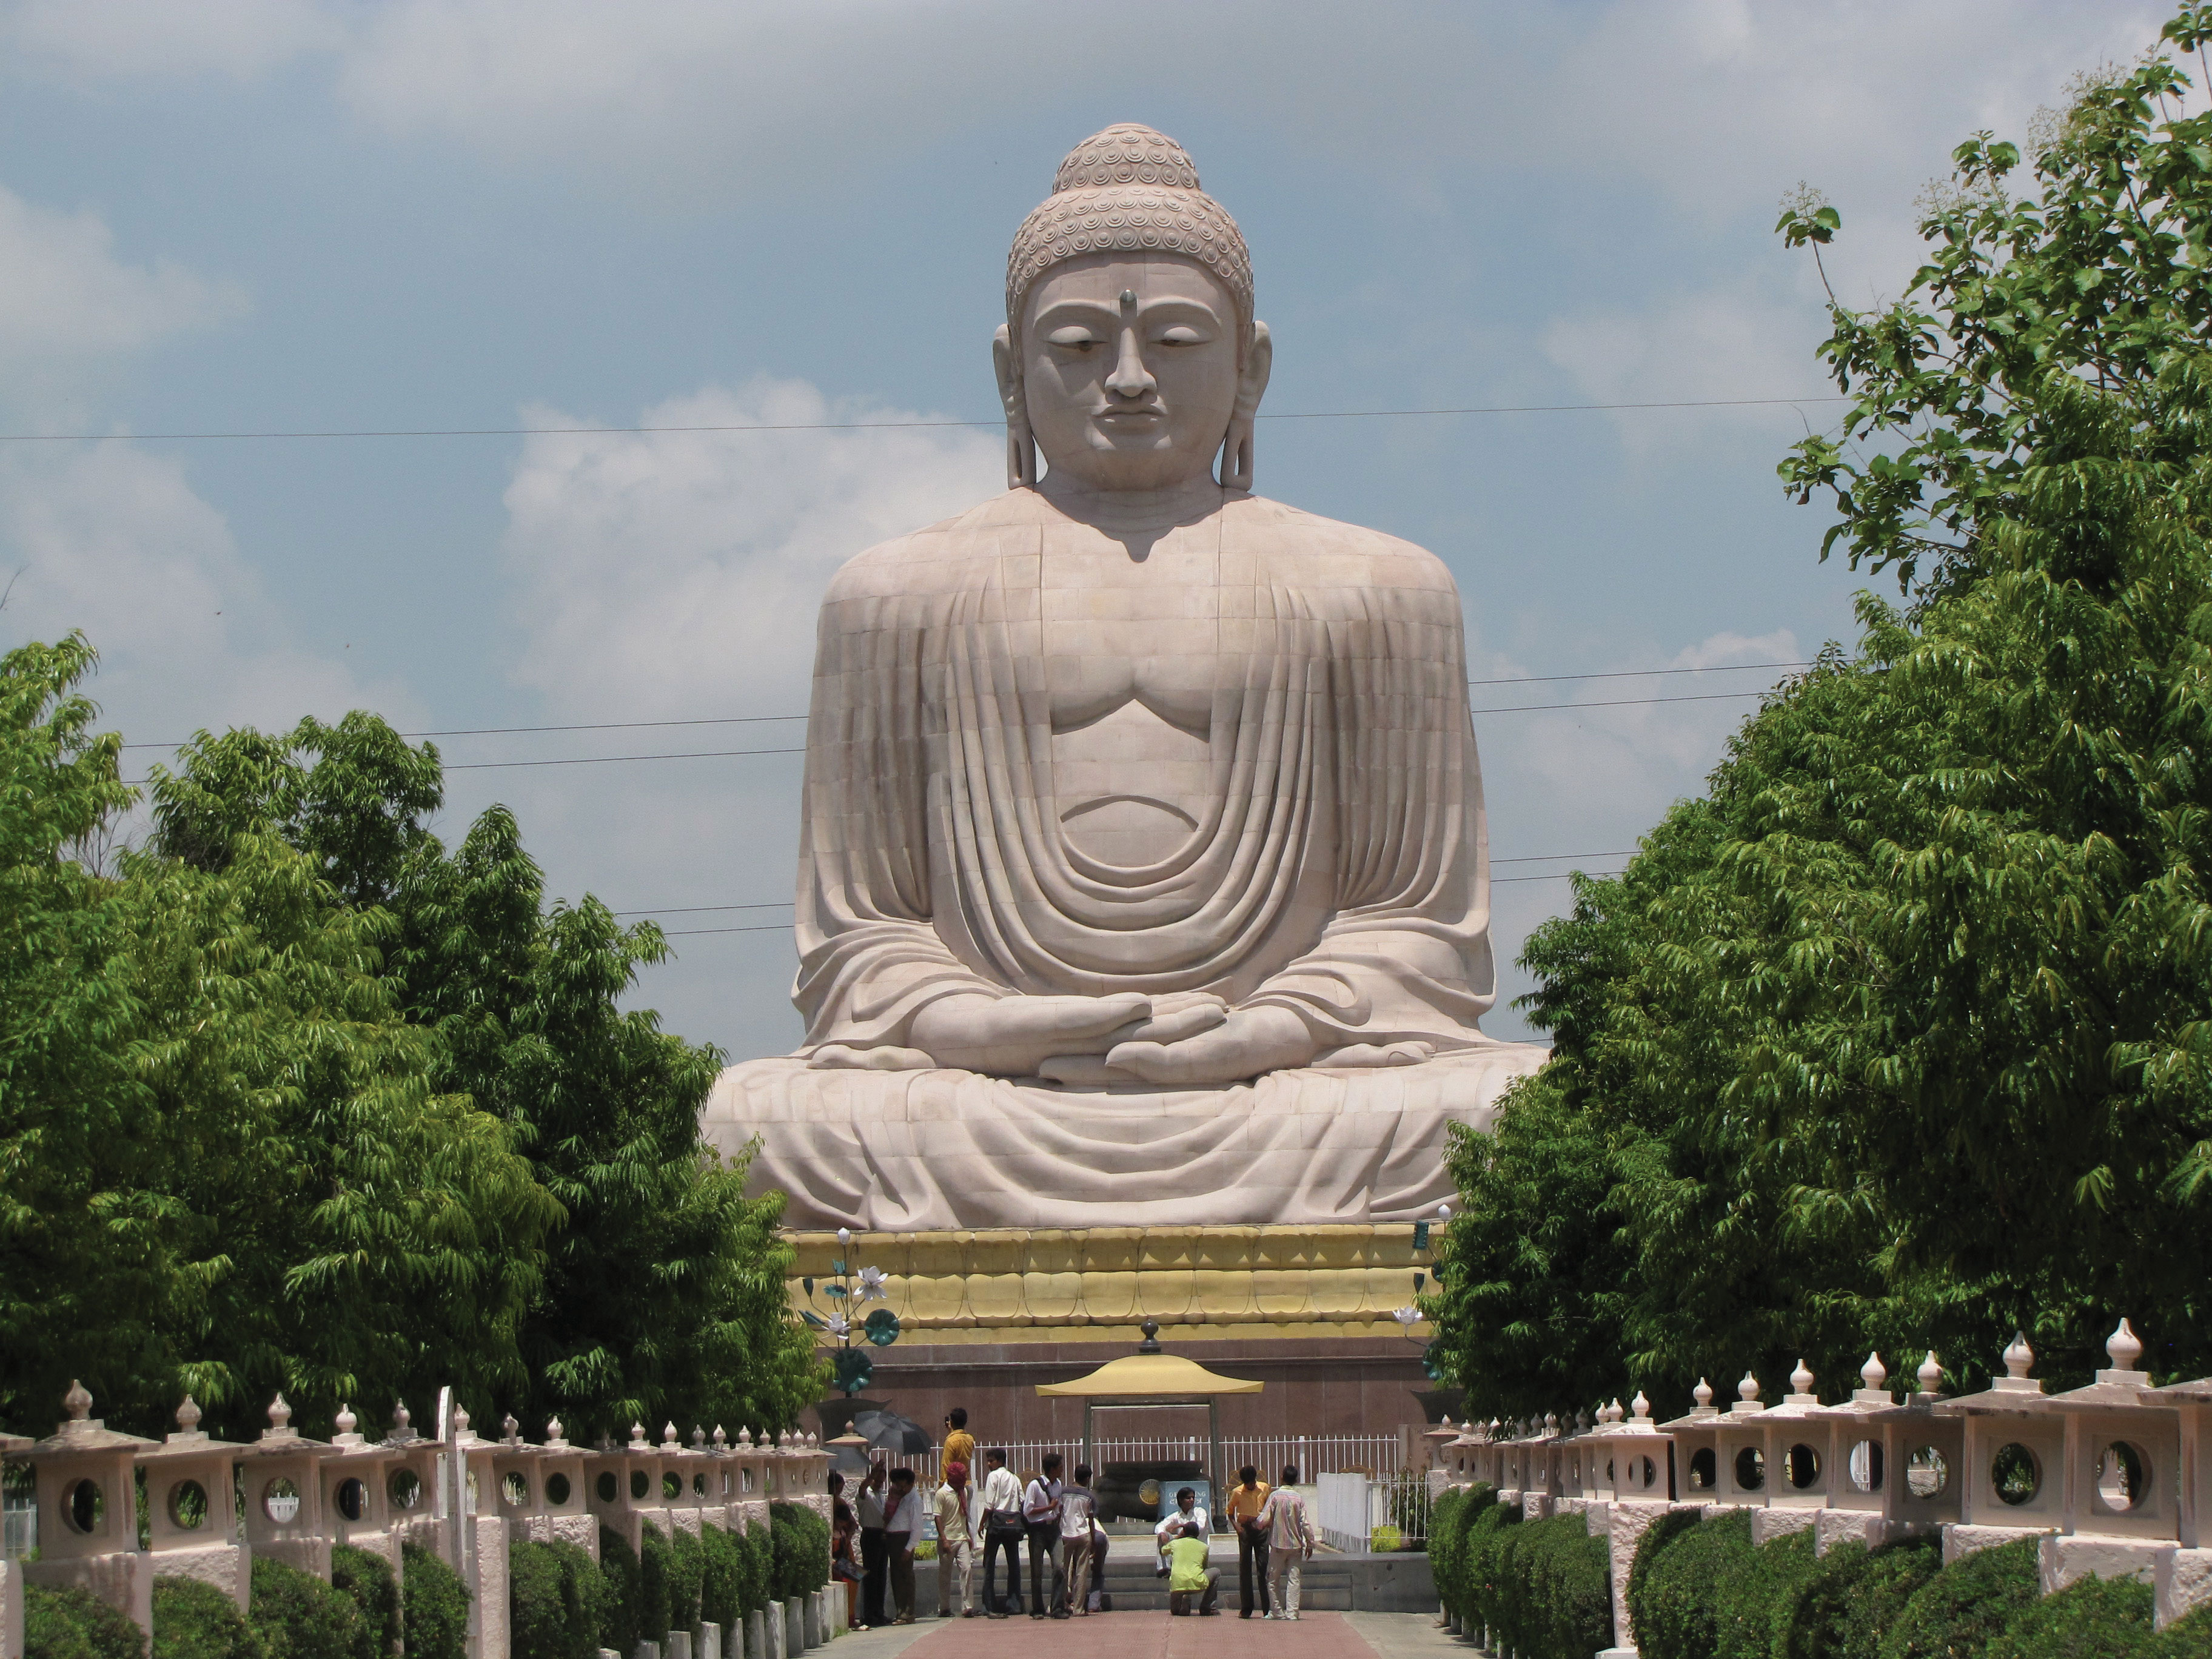 south river buddhist personals Buddhist temple in toms river on ypcom see reviews, photos, directions, phone numbers and more for the best buddhist places of worship in toms river, nj start your search by typing in the business name below.